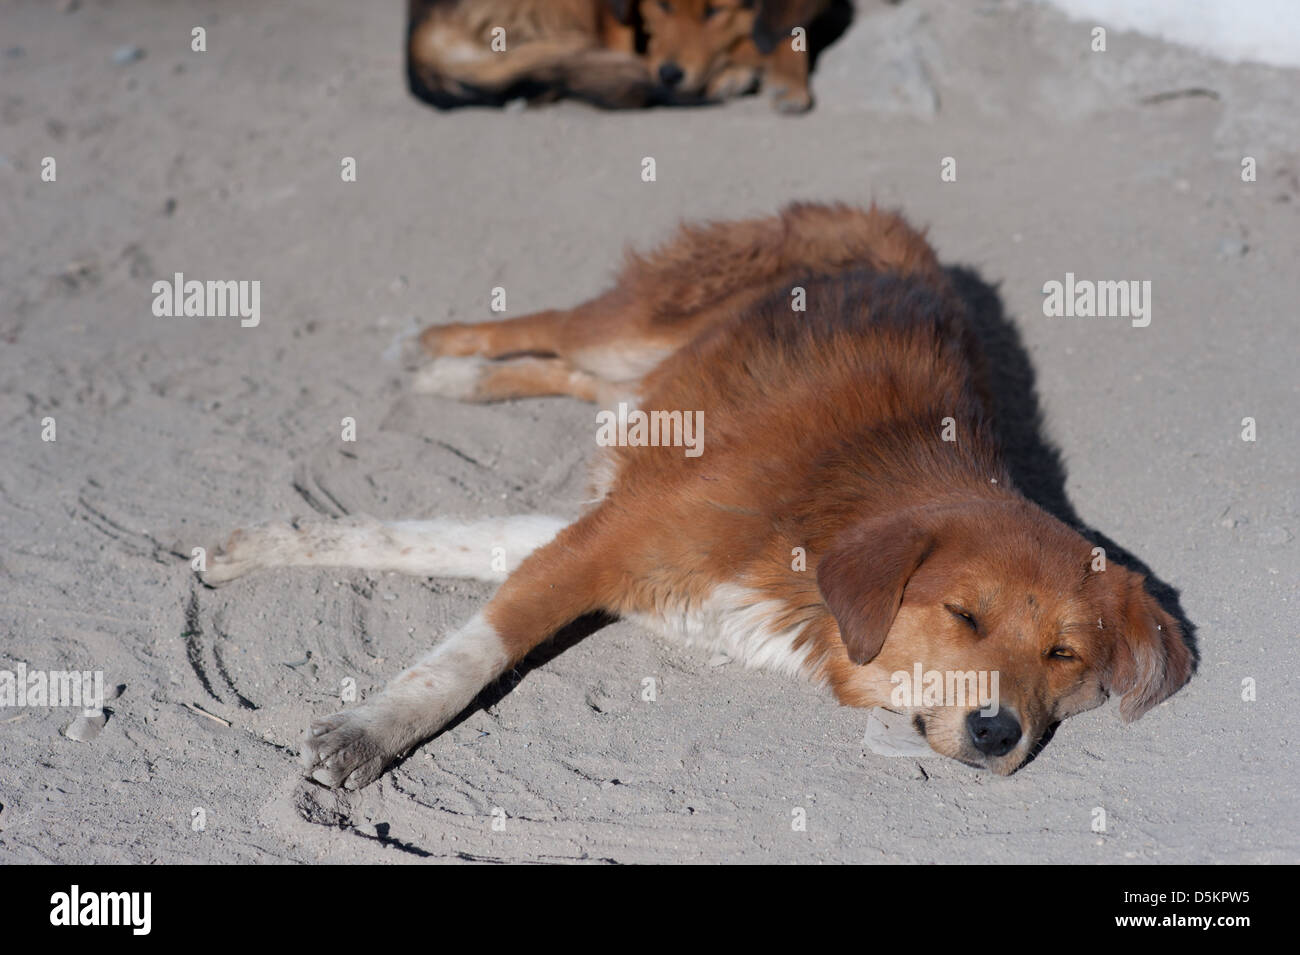 A cute, homeless, street dog in the mountain town of Leh, Ladakh, Jammu and Kashmir. India. - Stock Image